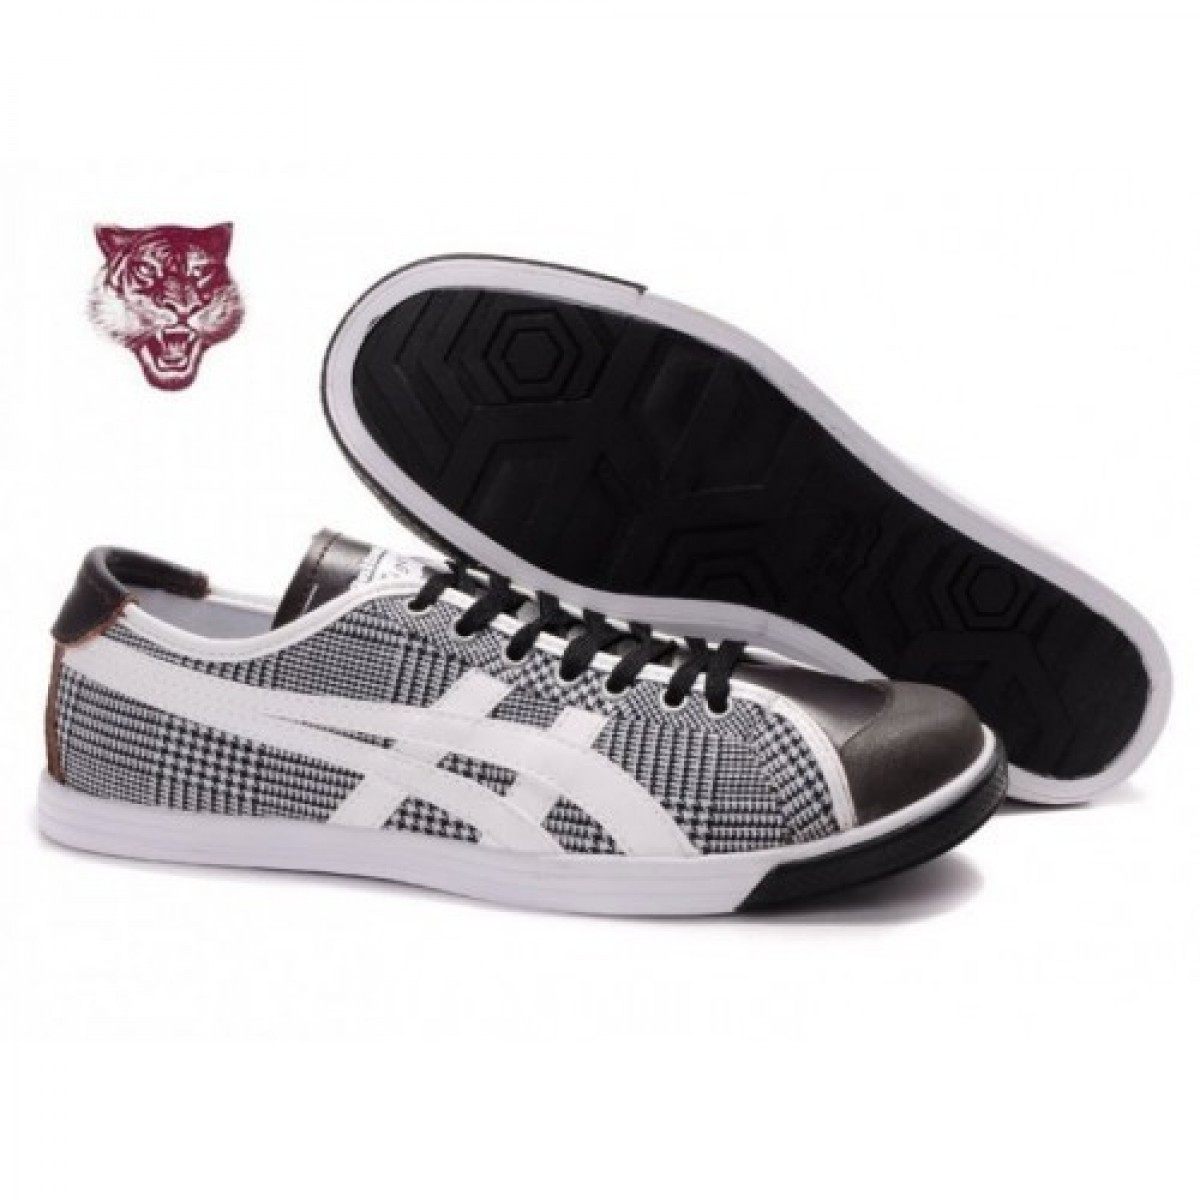 AA5103 Soldes Asics Onitsuka Tiger Coolidge Lo Chaussures Blanc Noir Brun 99501369 Pas Cher